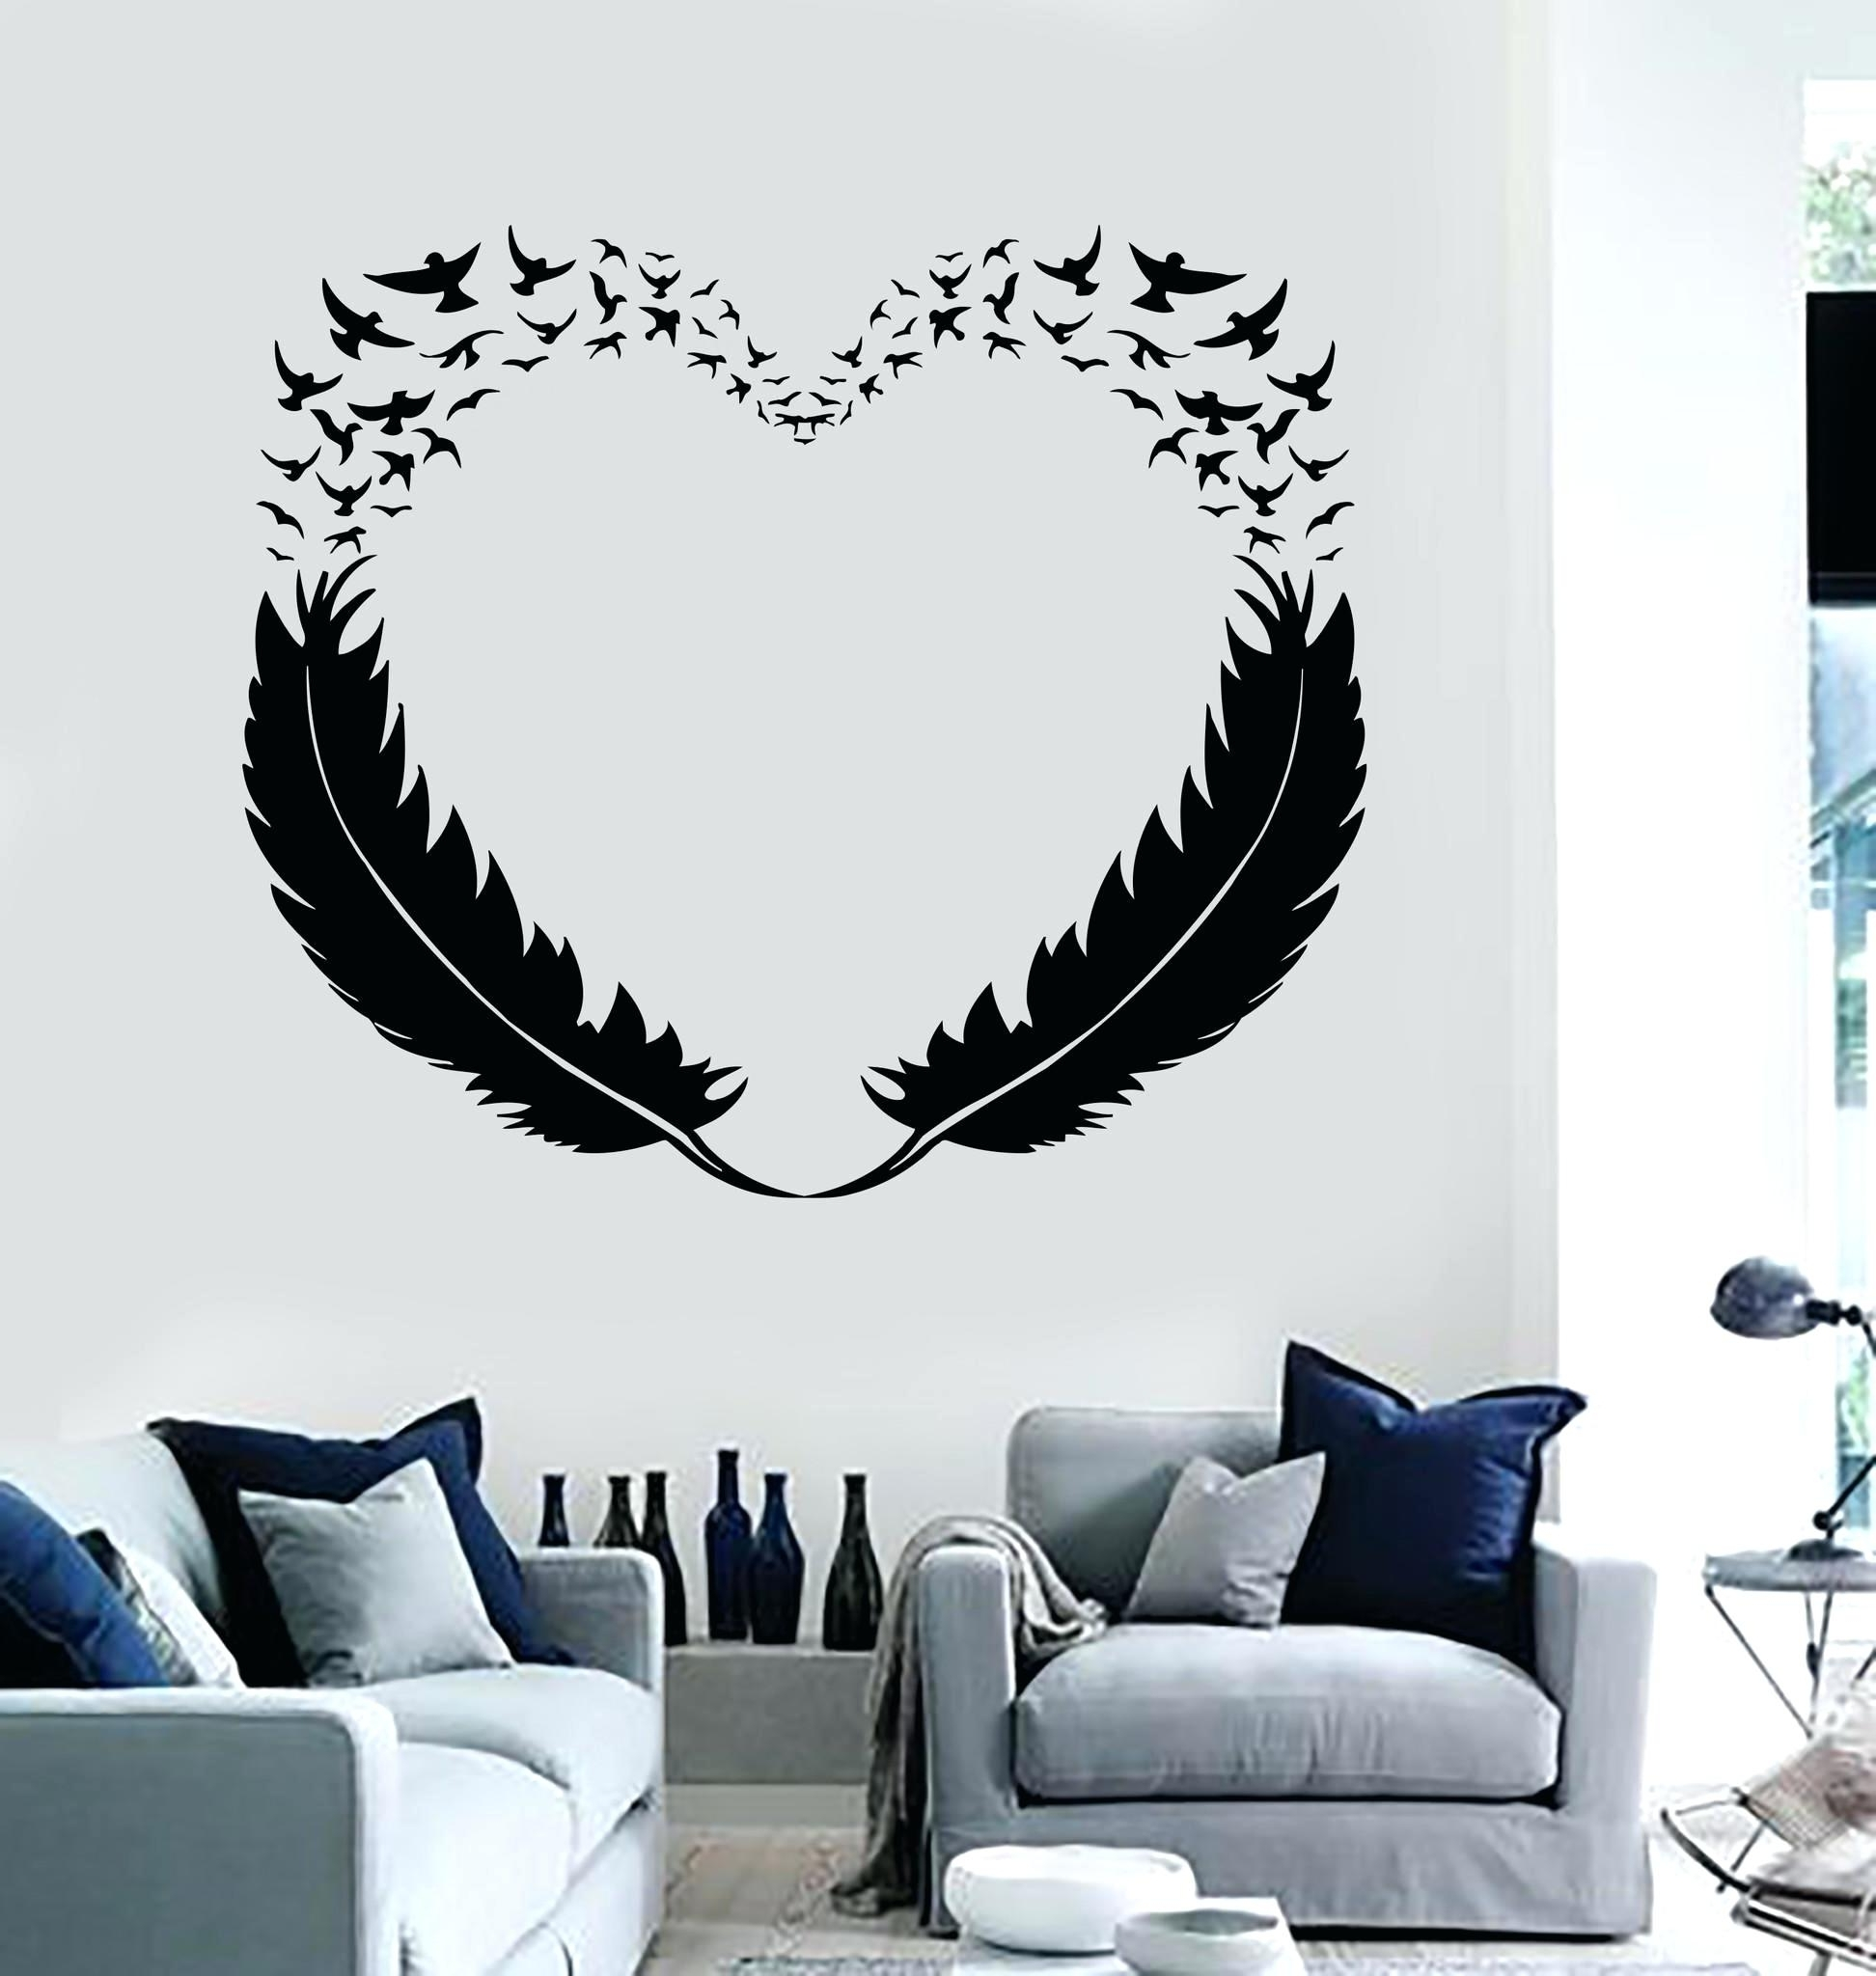 Cool Wall Decal Cool Wall Decals Ideasplataforma